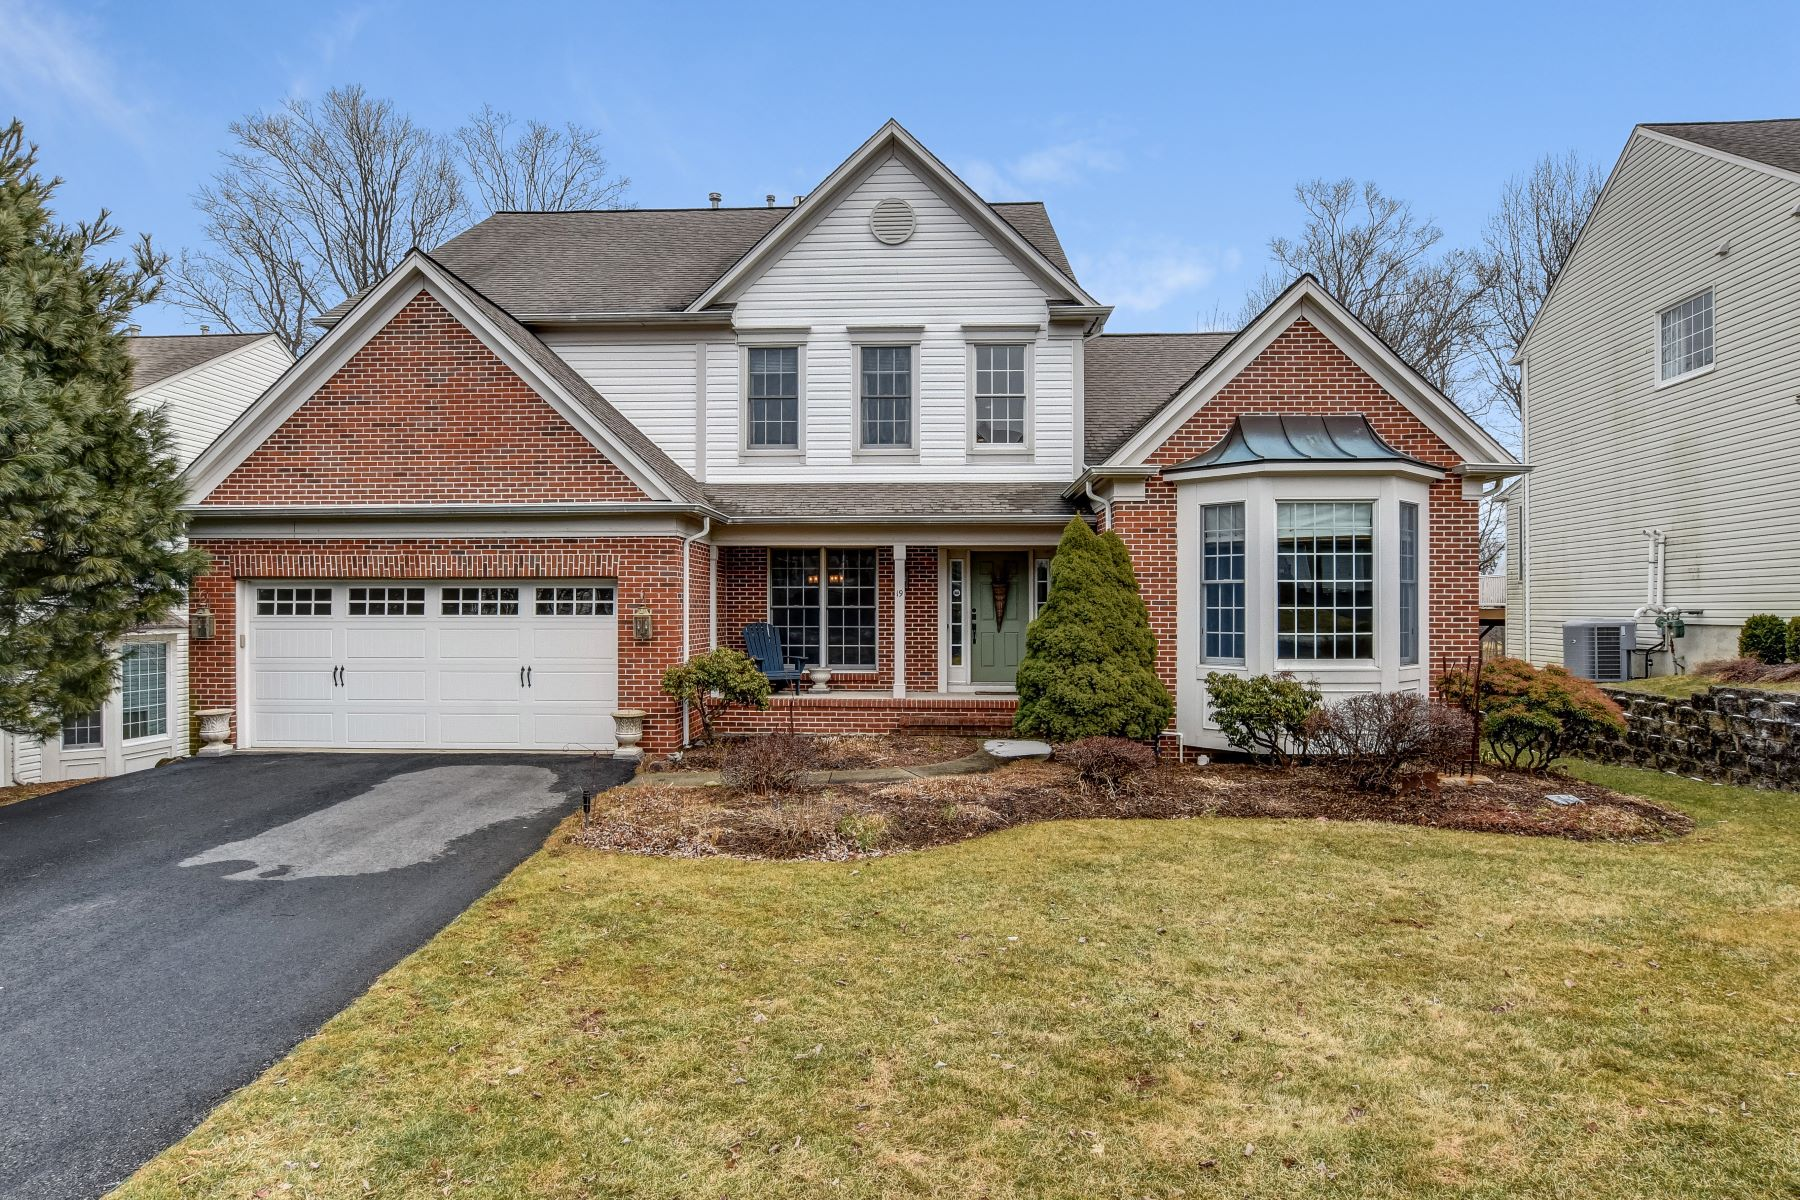 Single Family Home for Sale at Stunning Colonial 19 Wellington Drive, Basking Ridge, New Jersey 07920 United States